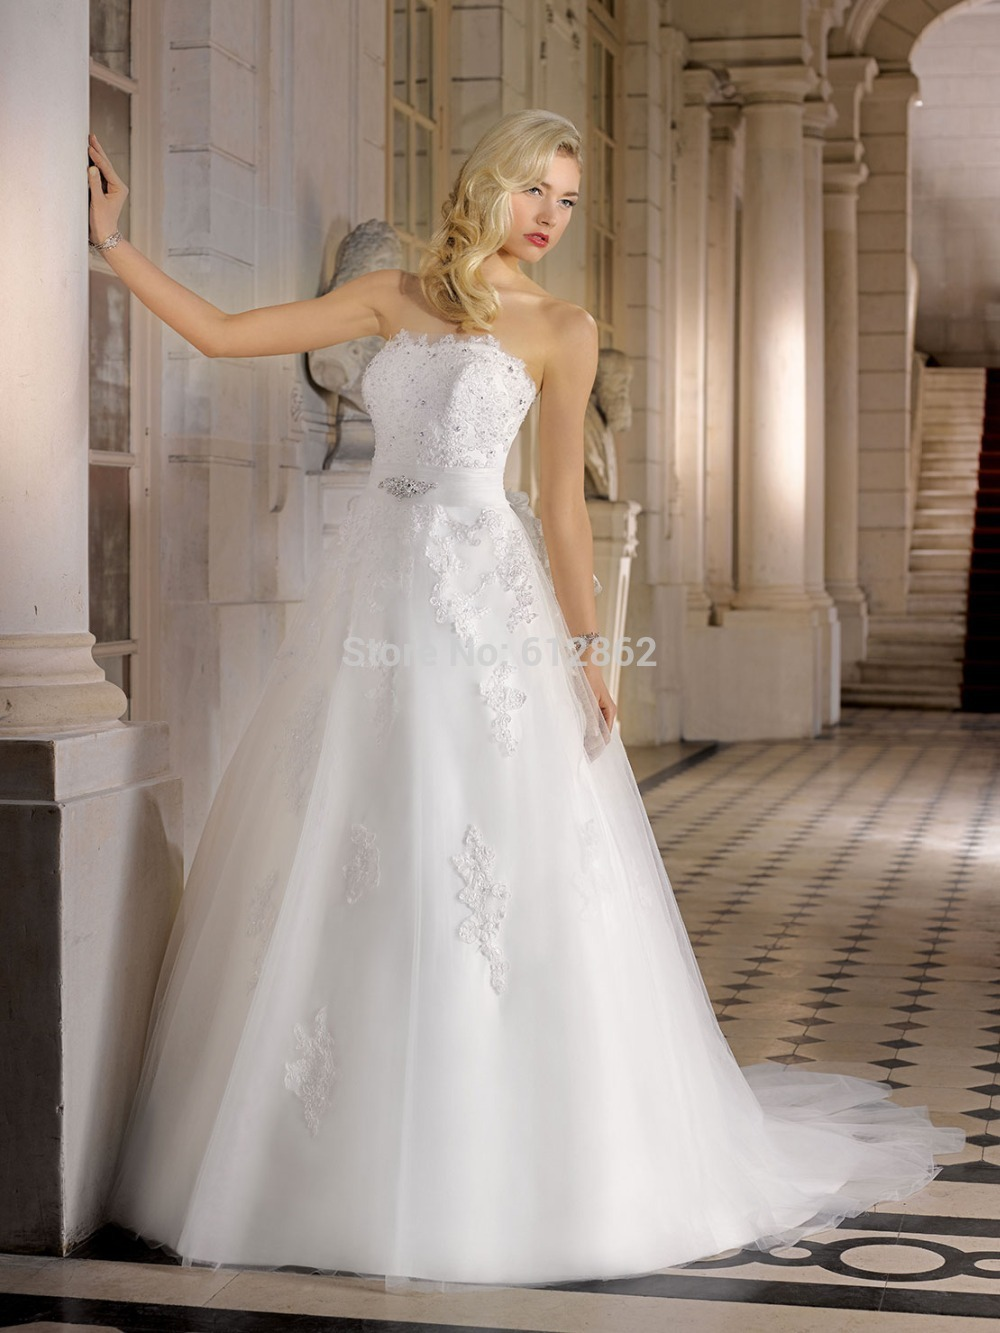 Strapless Beaded Lace A Line Long Long Train Wedding